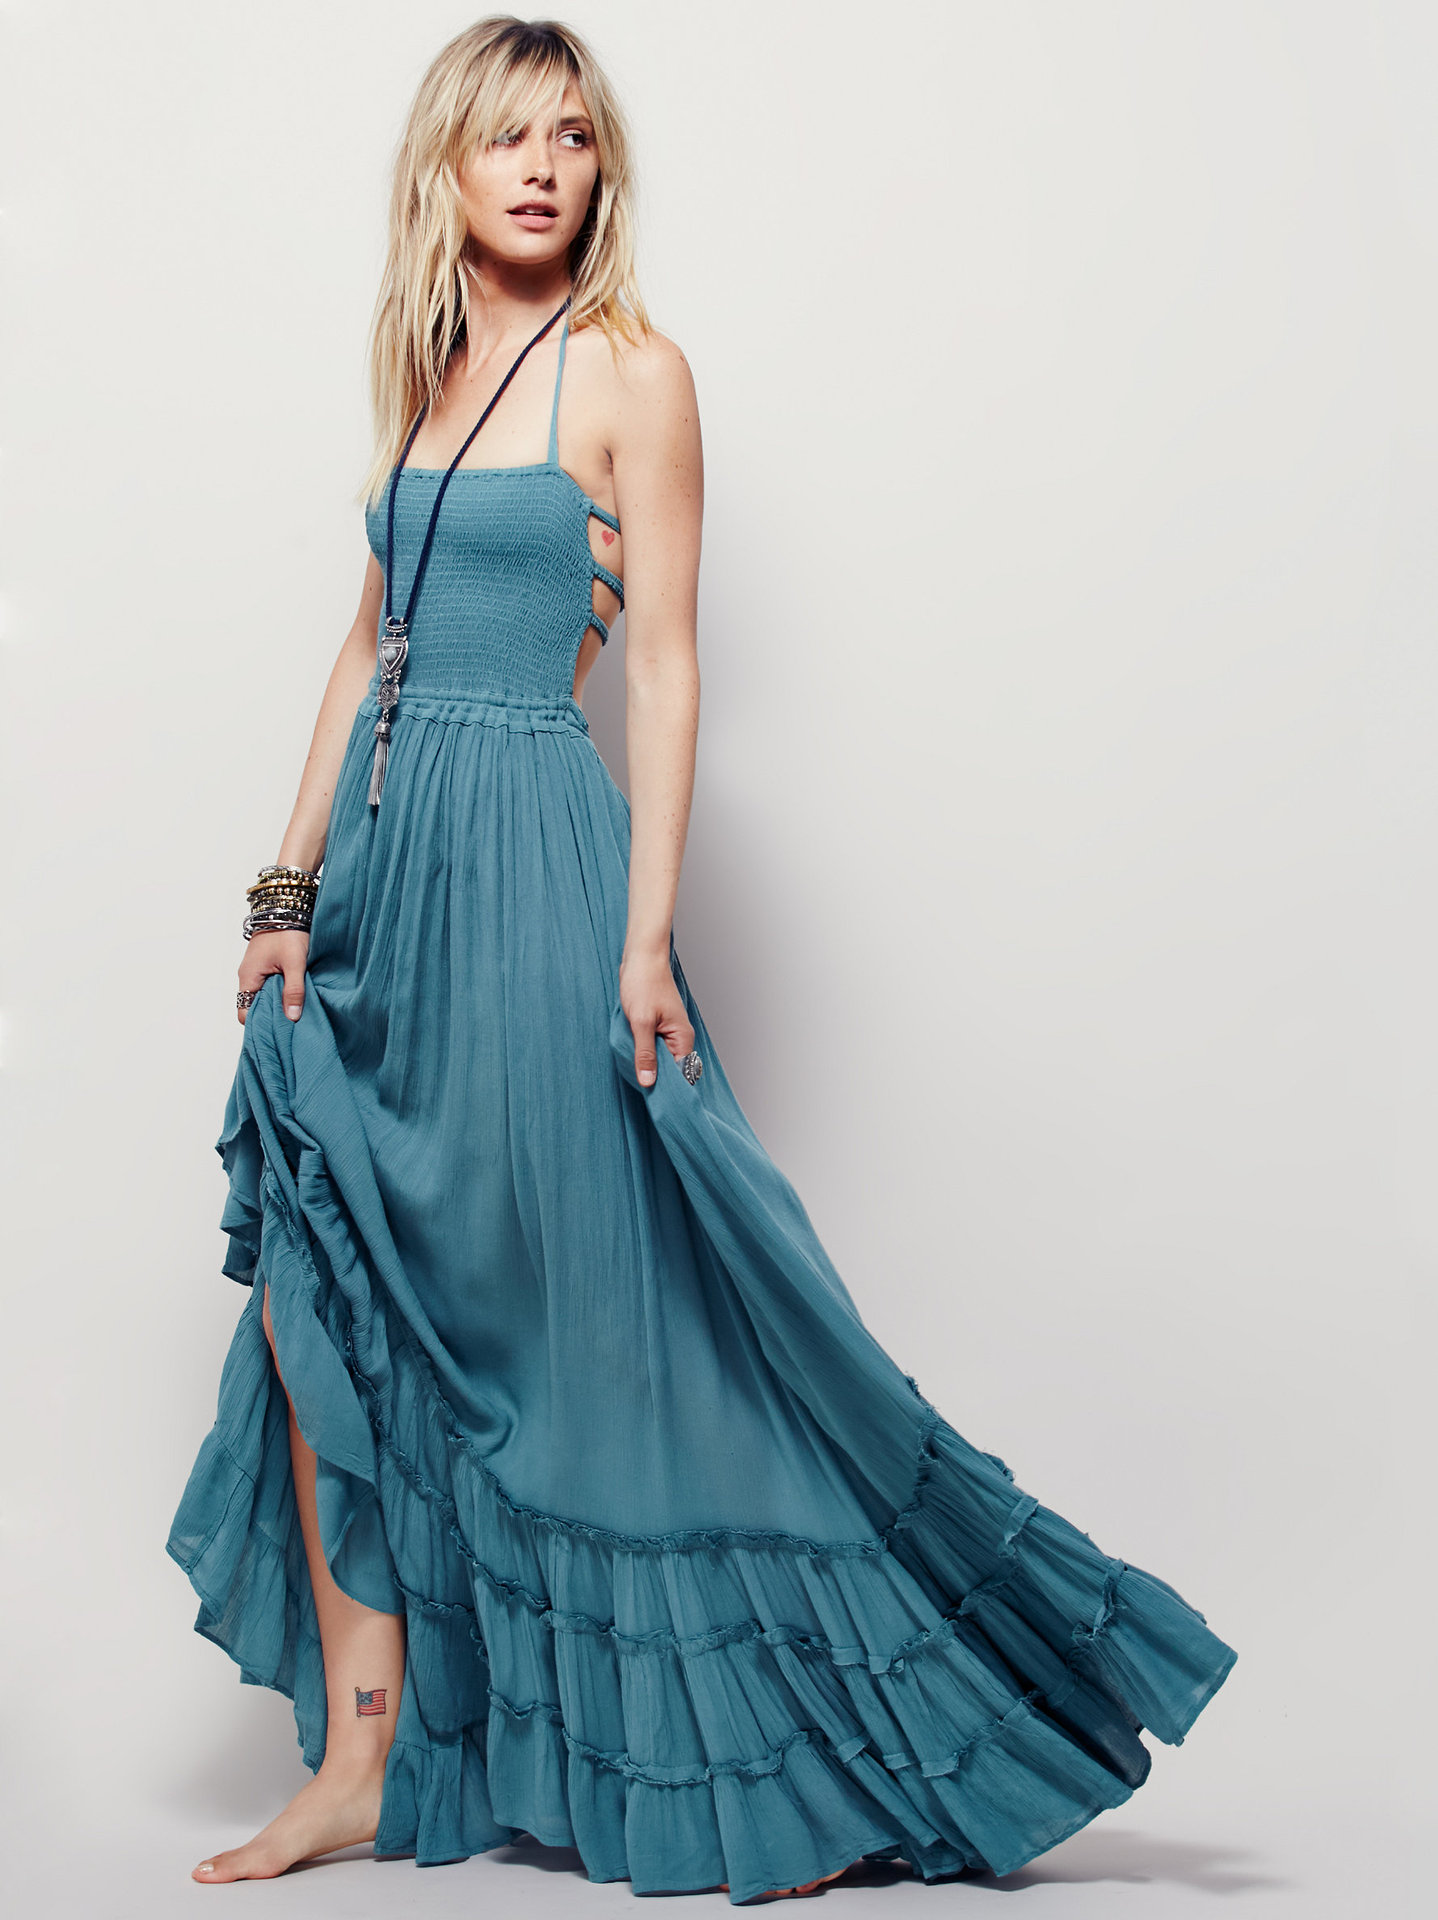 american sites party dress – fashion dresses